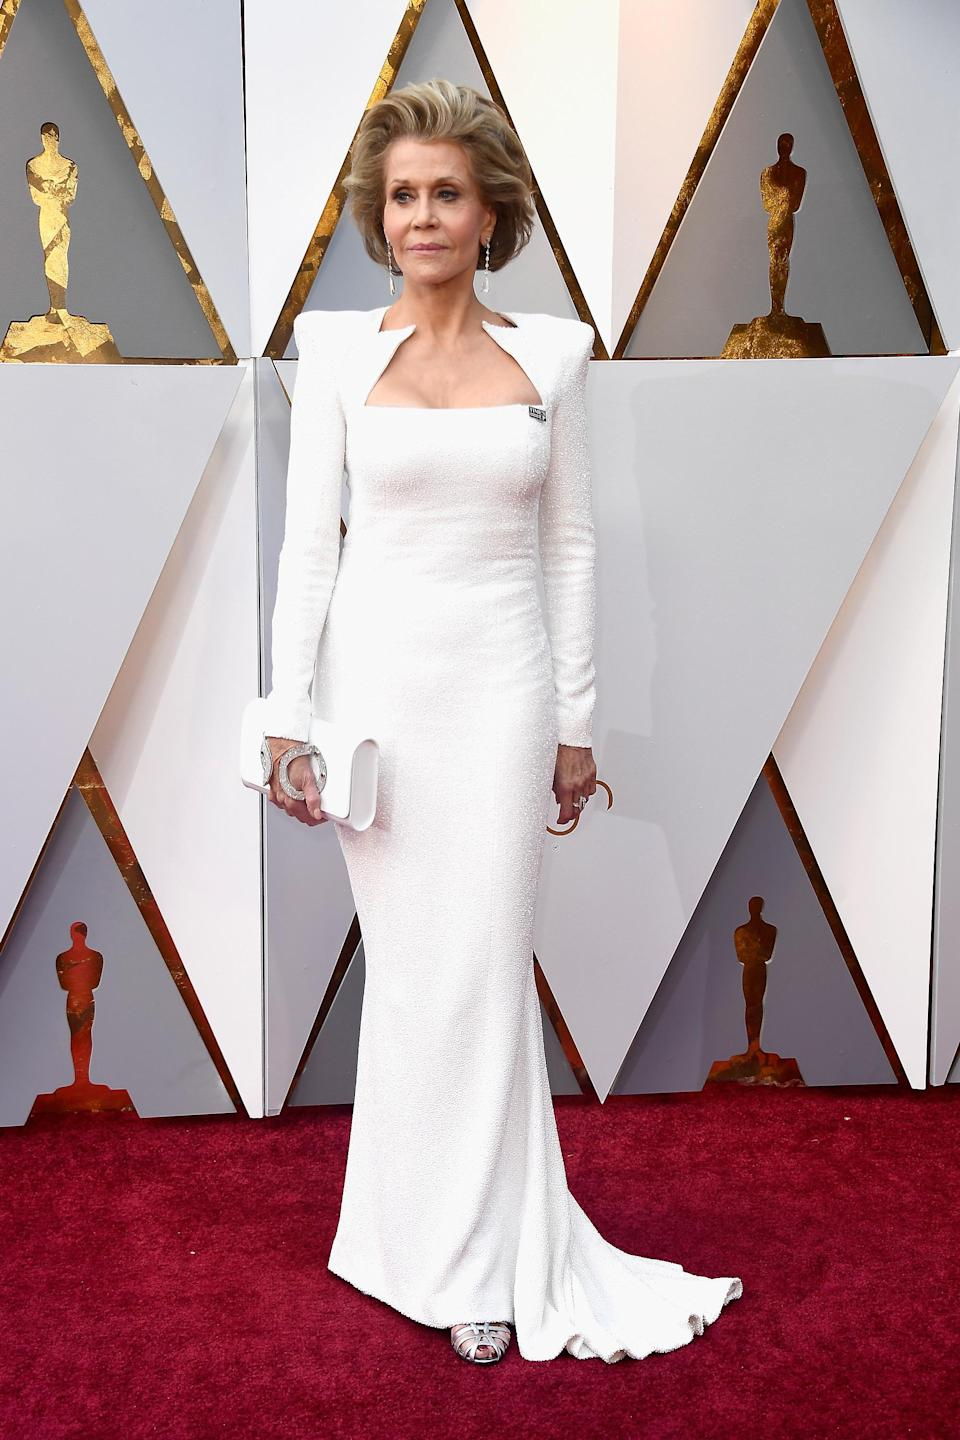 Jane Fonda's showcased her sartorial prowess many times during her years in the limelight, but it was at the 2018 Oscars, aged 80, that she wore a Balmain gown we'll never forget. The column-cut dress, from Olivier Rousteing's first red carpet collection complemented the star's sophisticated and structured style but boasted an edgy neckline.